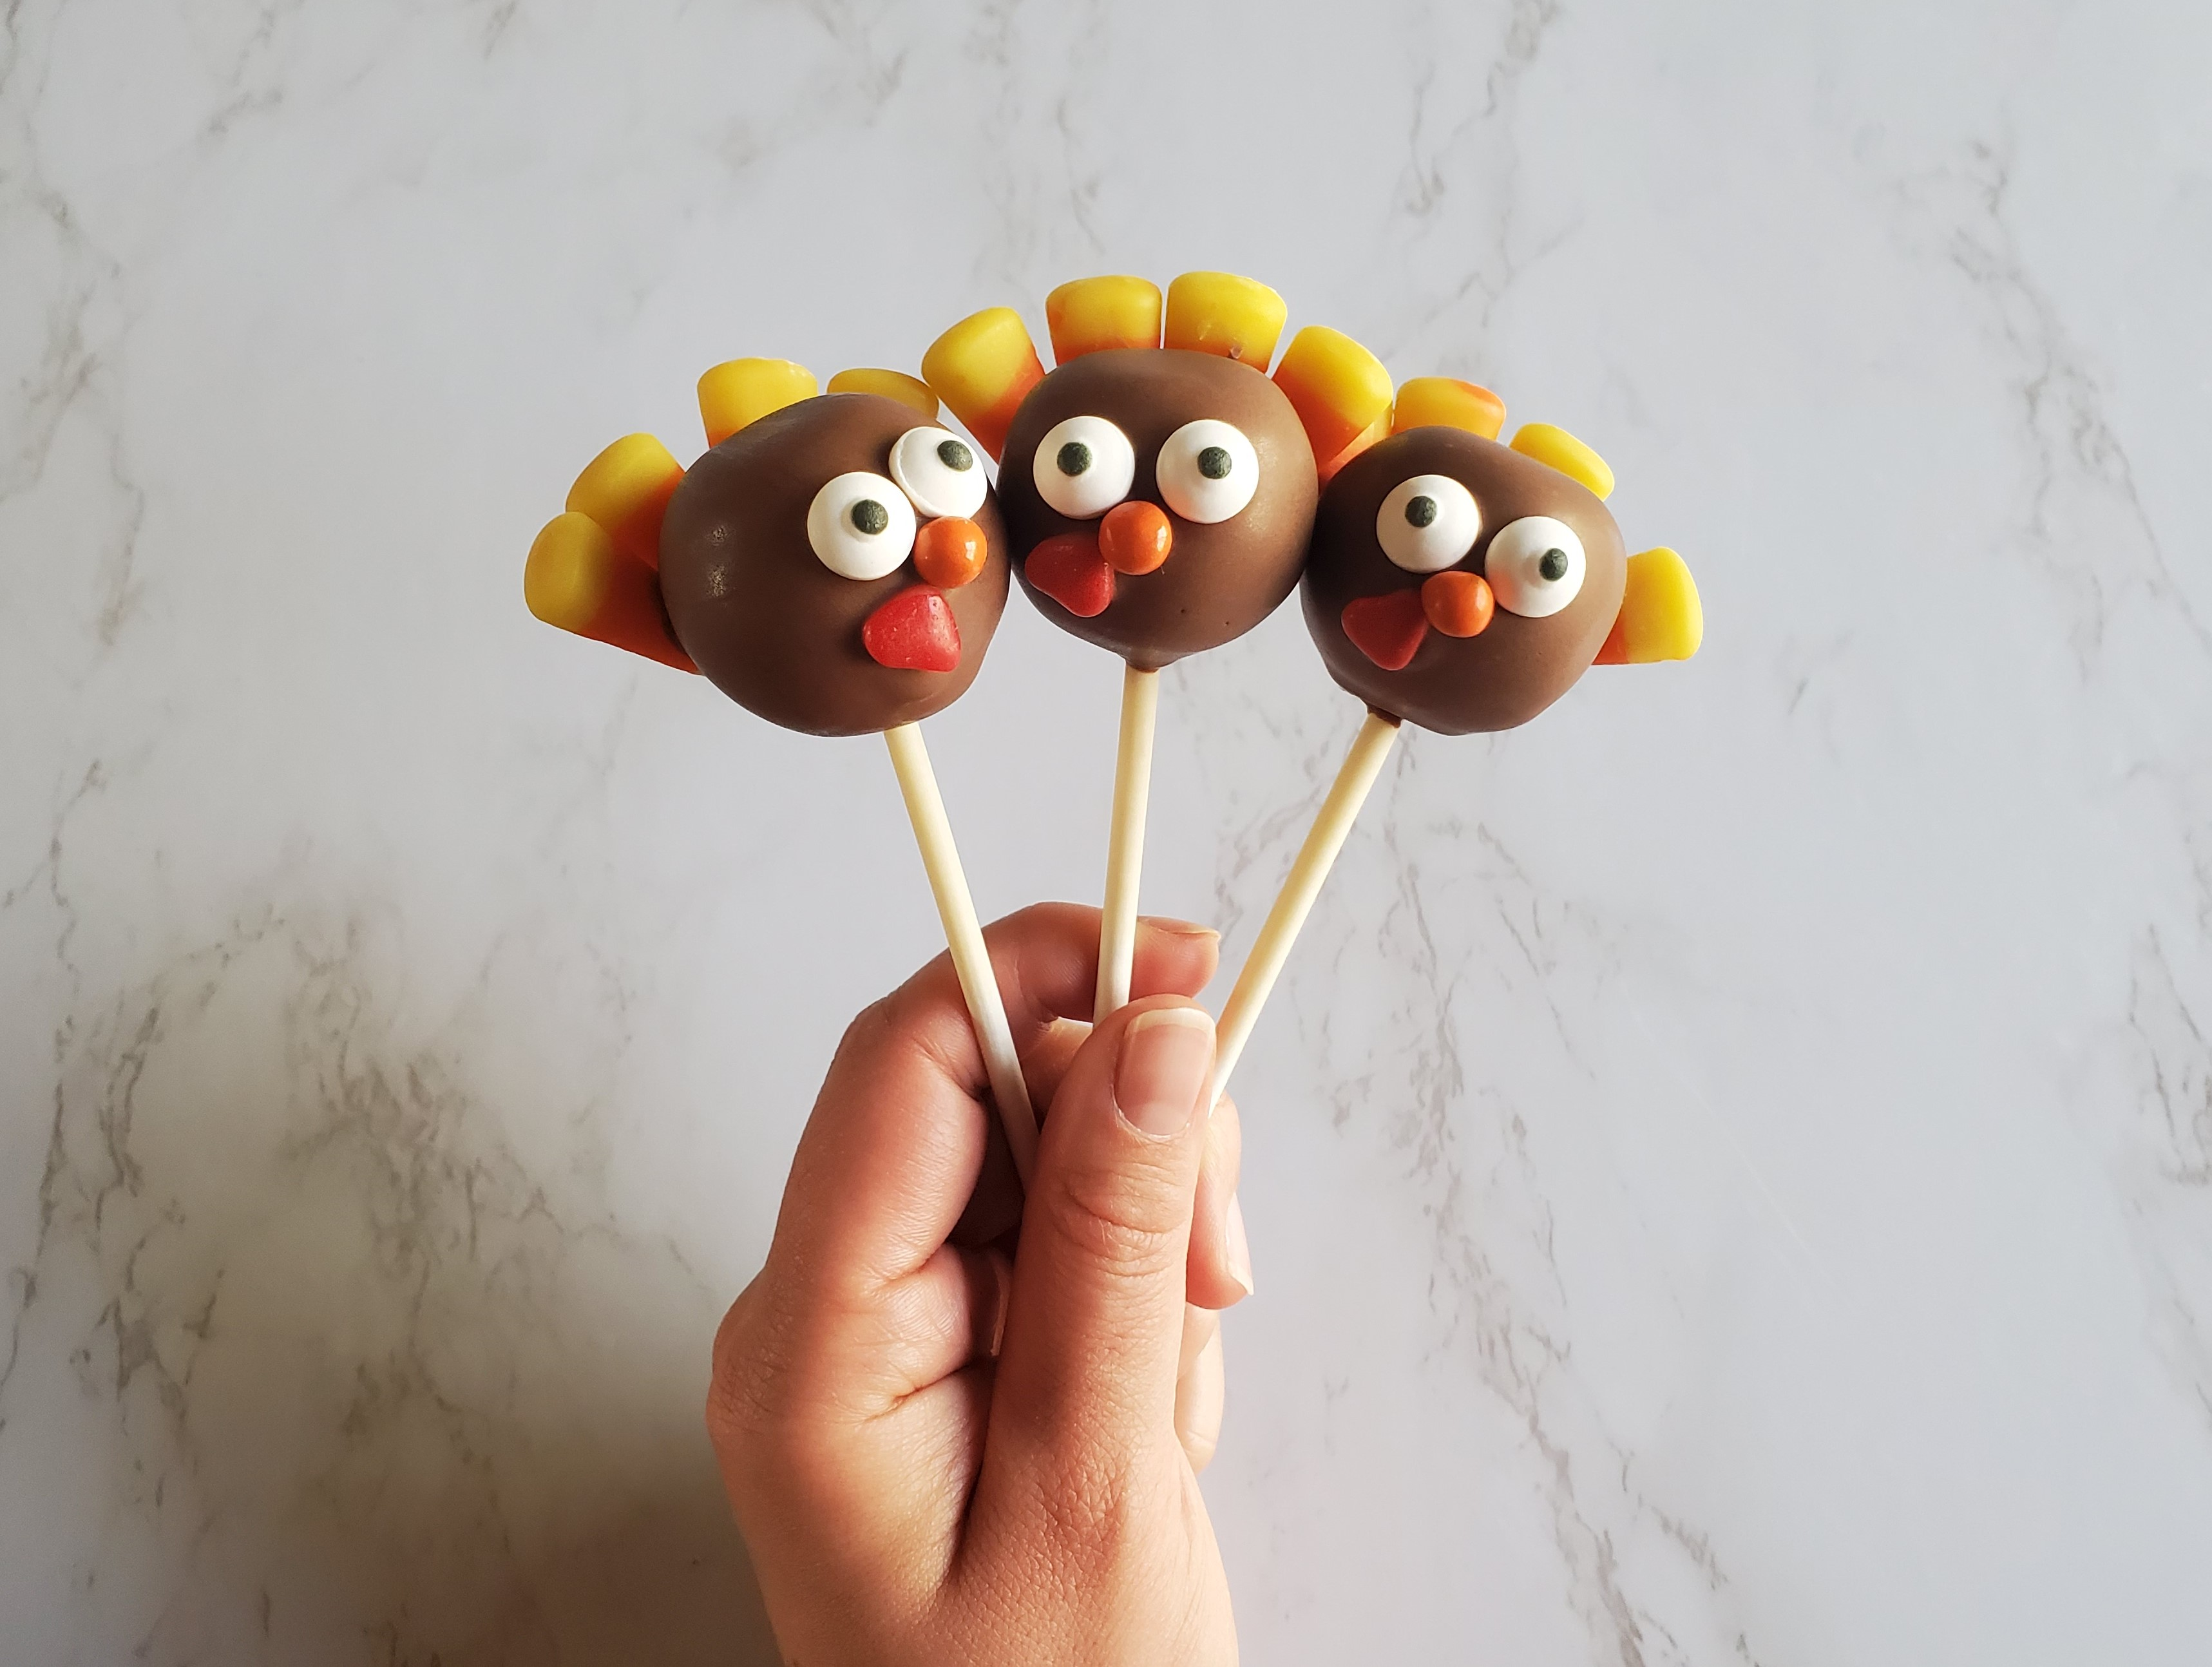 A hand holds up three cake pops decorated with candies including candy corn feathers to looks like turkeys in front of a marble background.